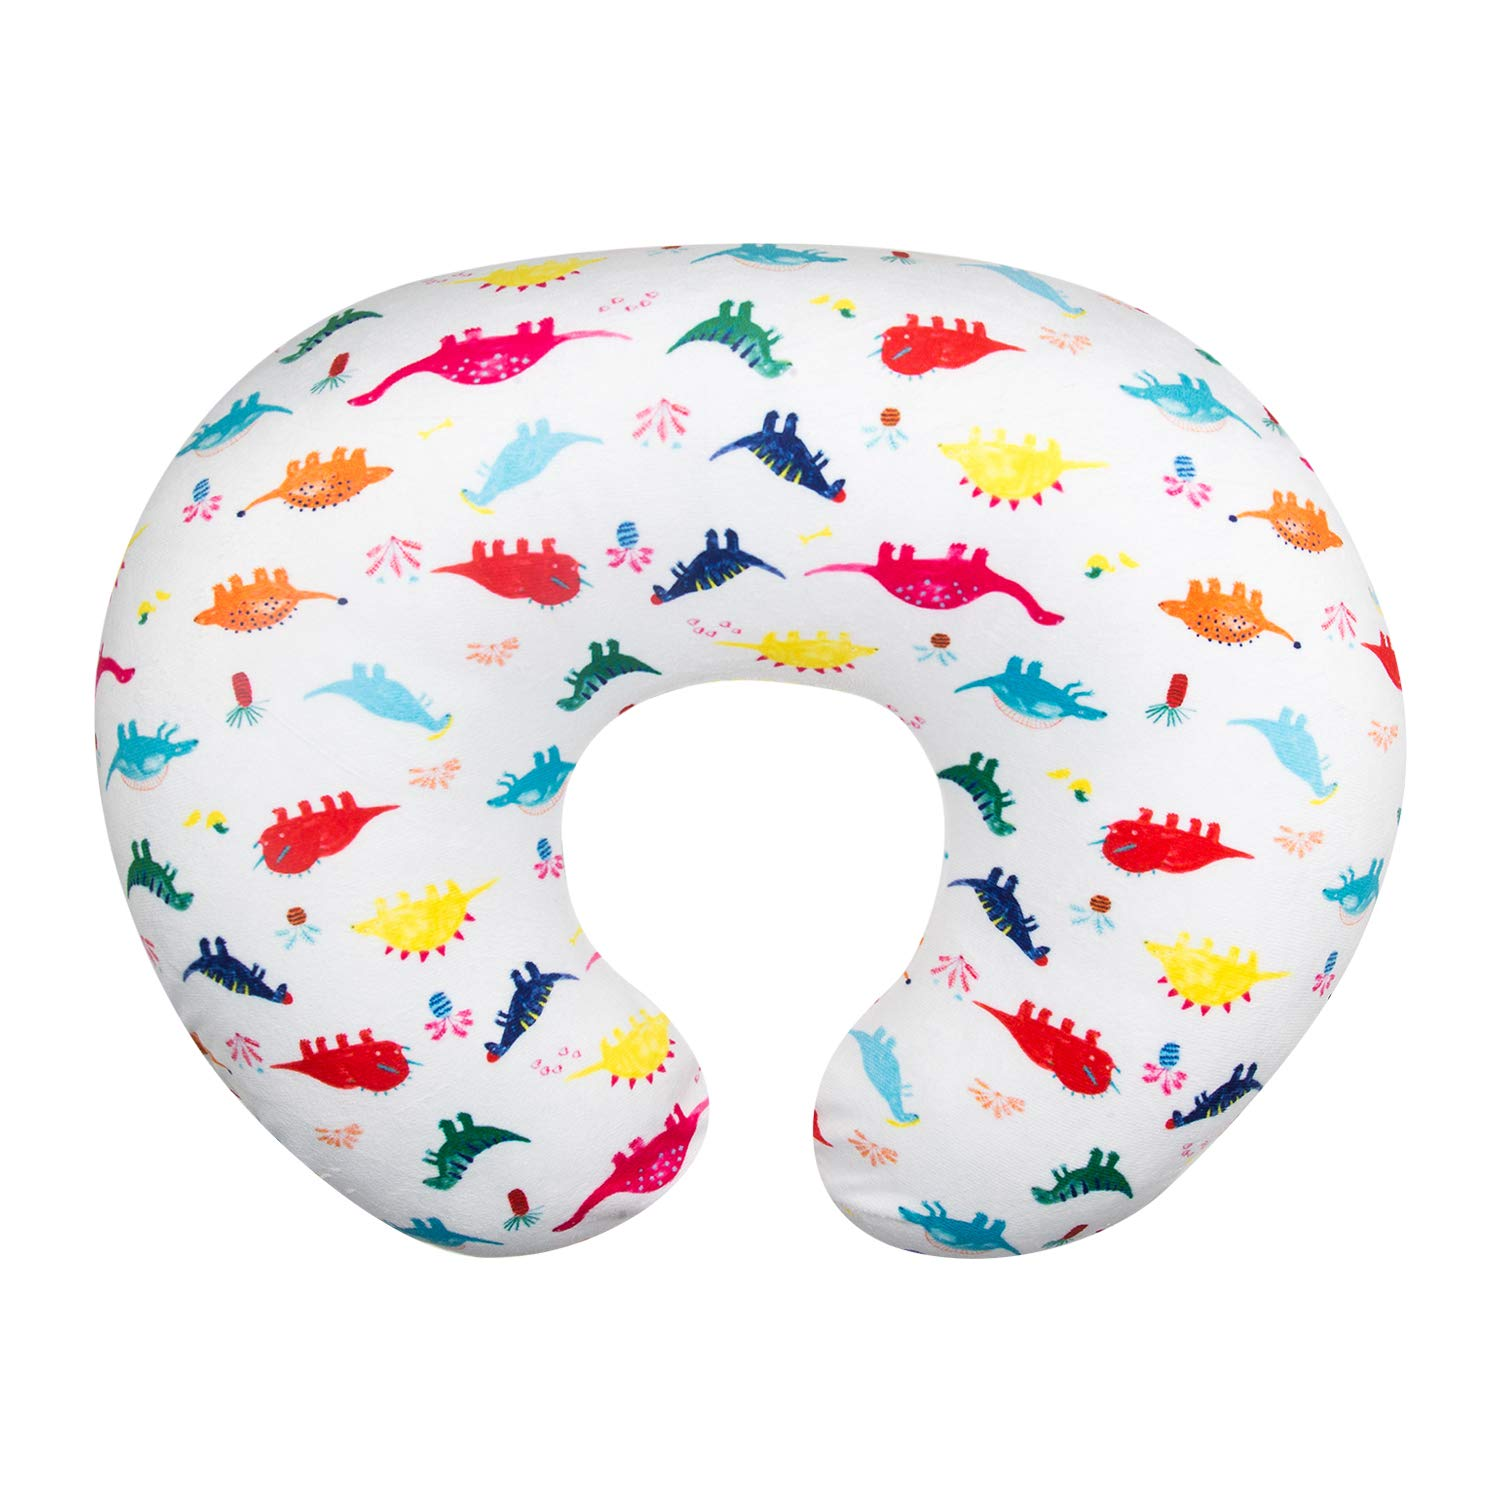 ALVABABY Nursing Pillow Cover Slipcover,100/% Organic Cotton,Soft and Comfortable,Feathers Design,Maternity Breastfeeding Newborn Infant Feeding Cushion Cover,Baby Shower Gift ZT-Z16